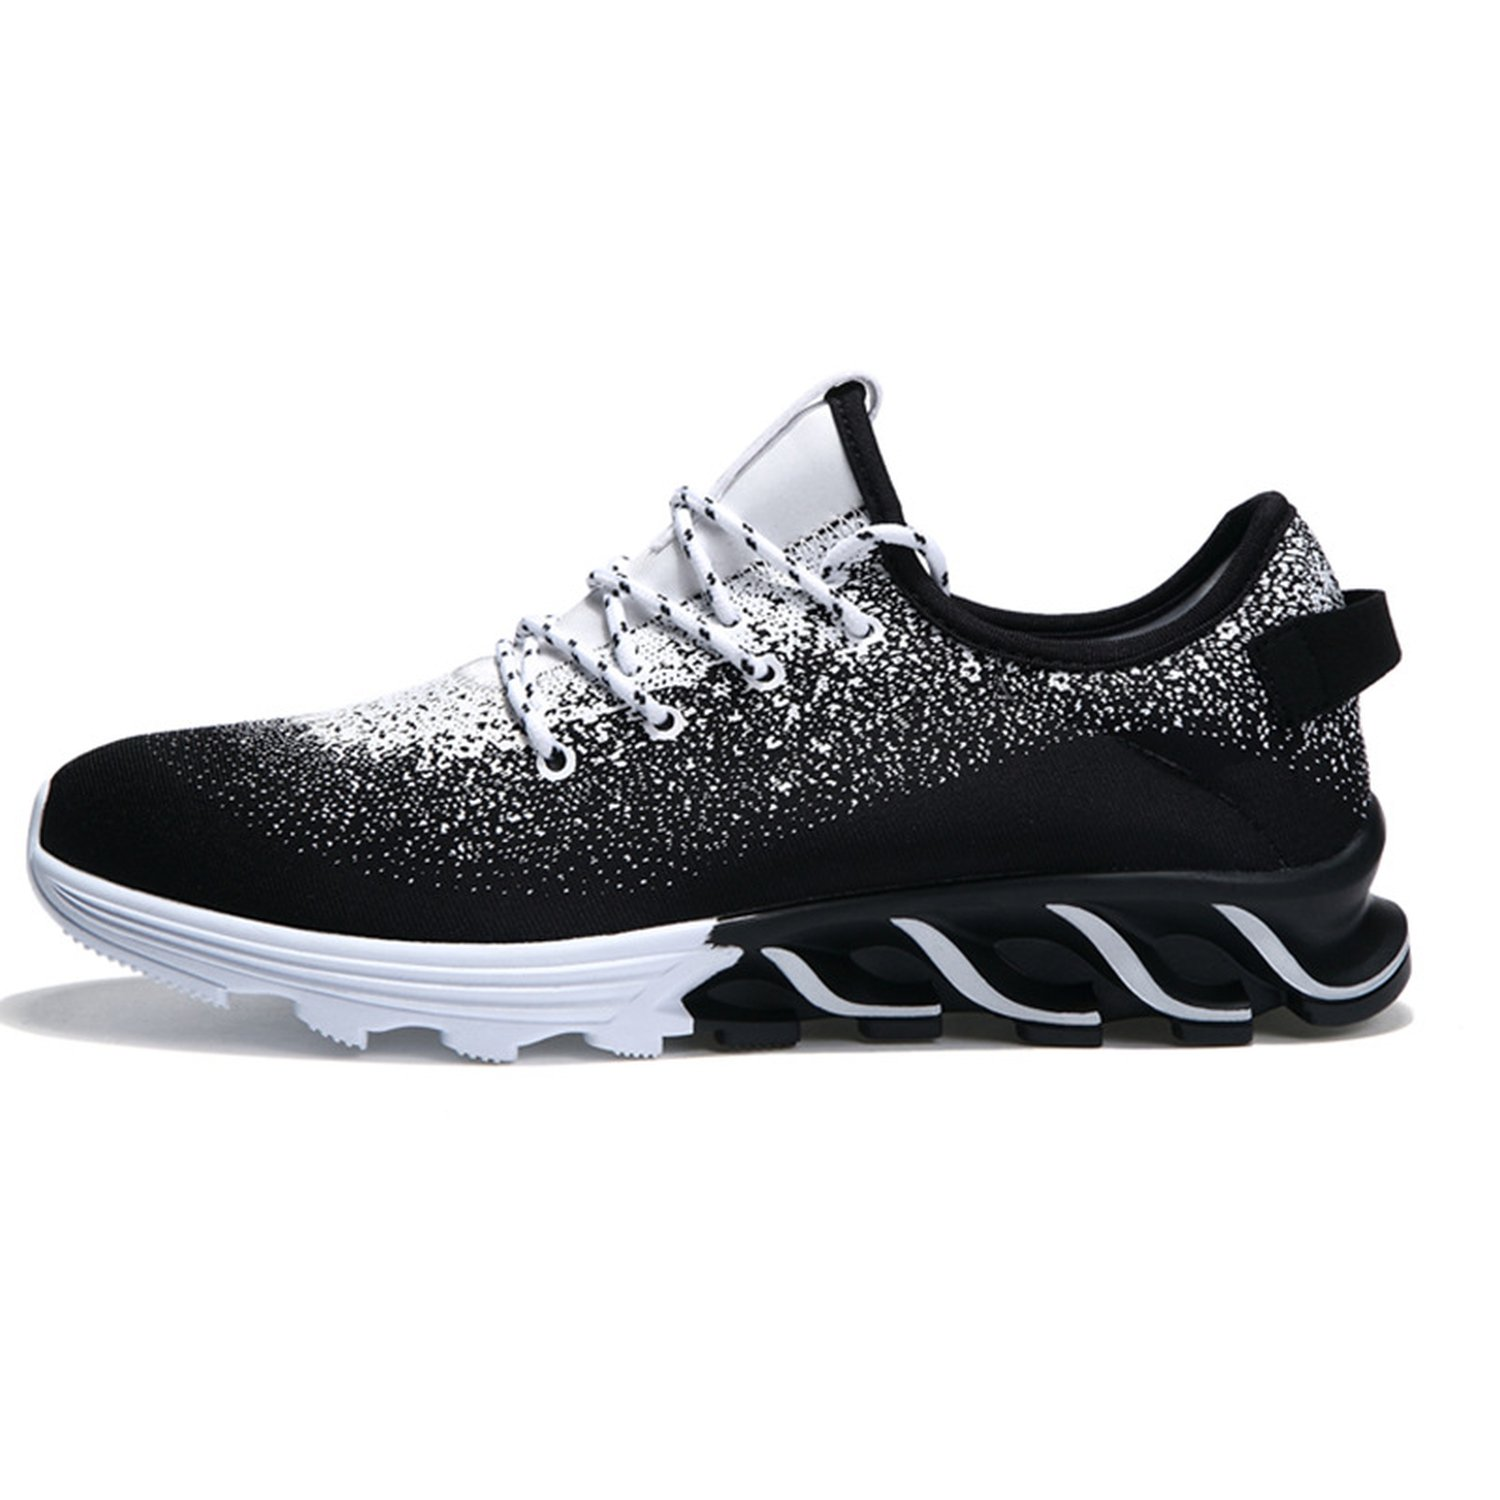 Processes Men Casual Sneakers Breathable Mesh Shoes for Adults Summer Outdoors Fitness Jogging